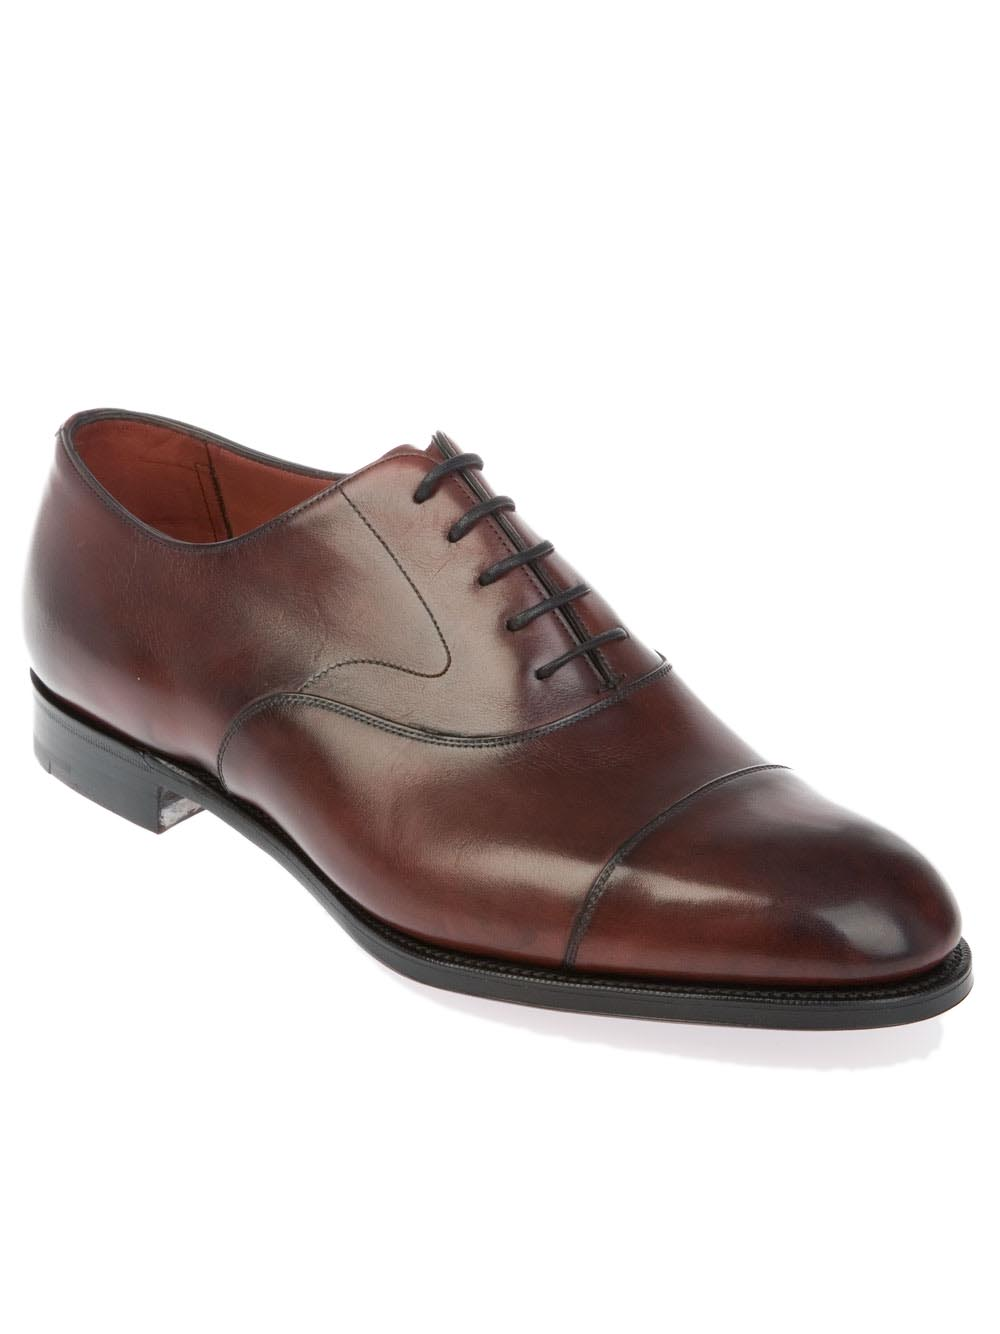 Edward Green Chelsea Shoe Burgundy Antique | CHELSEA | Botta & B Online Store